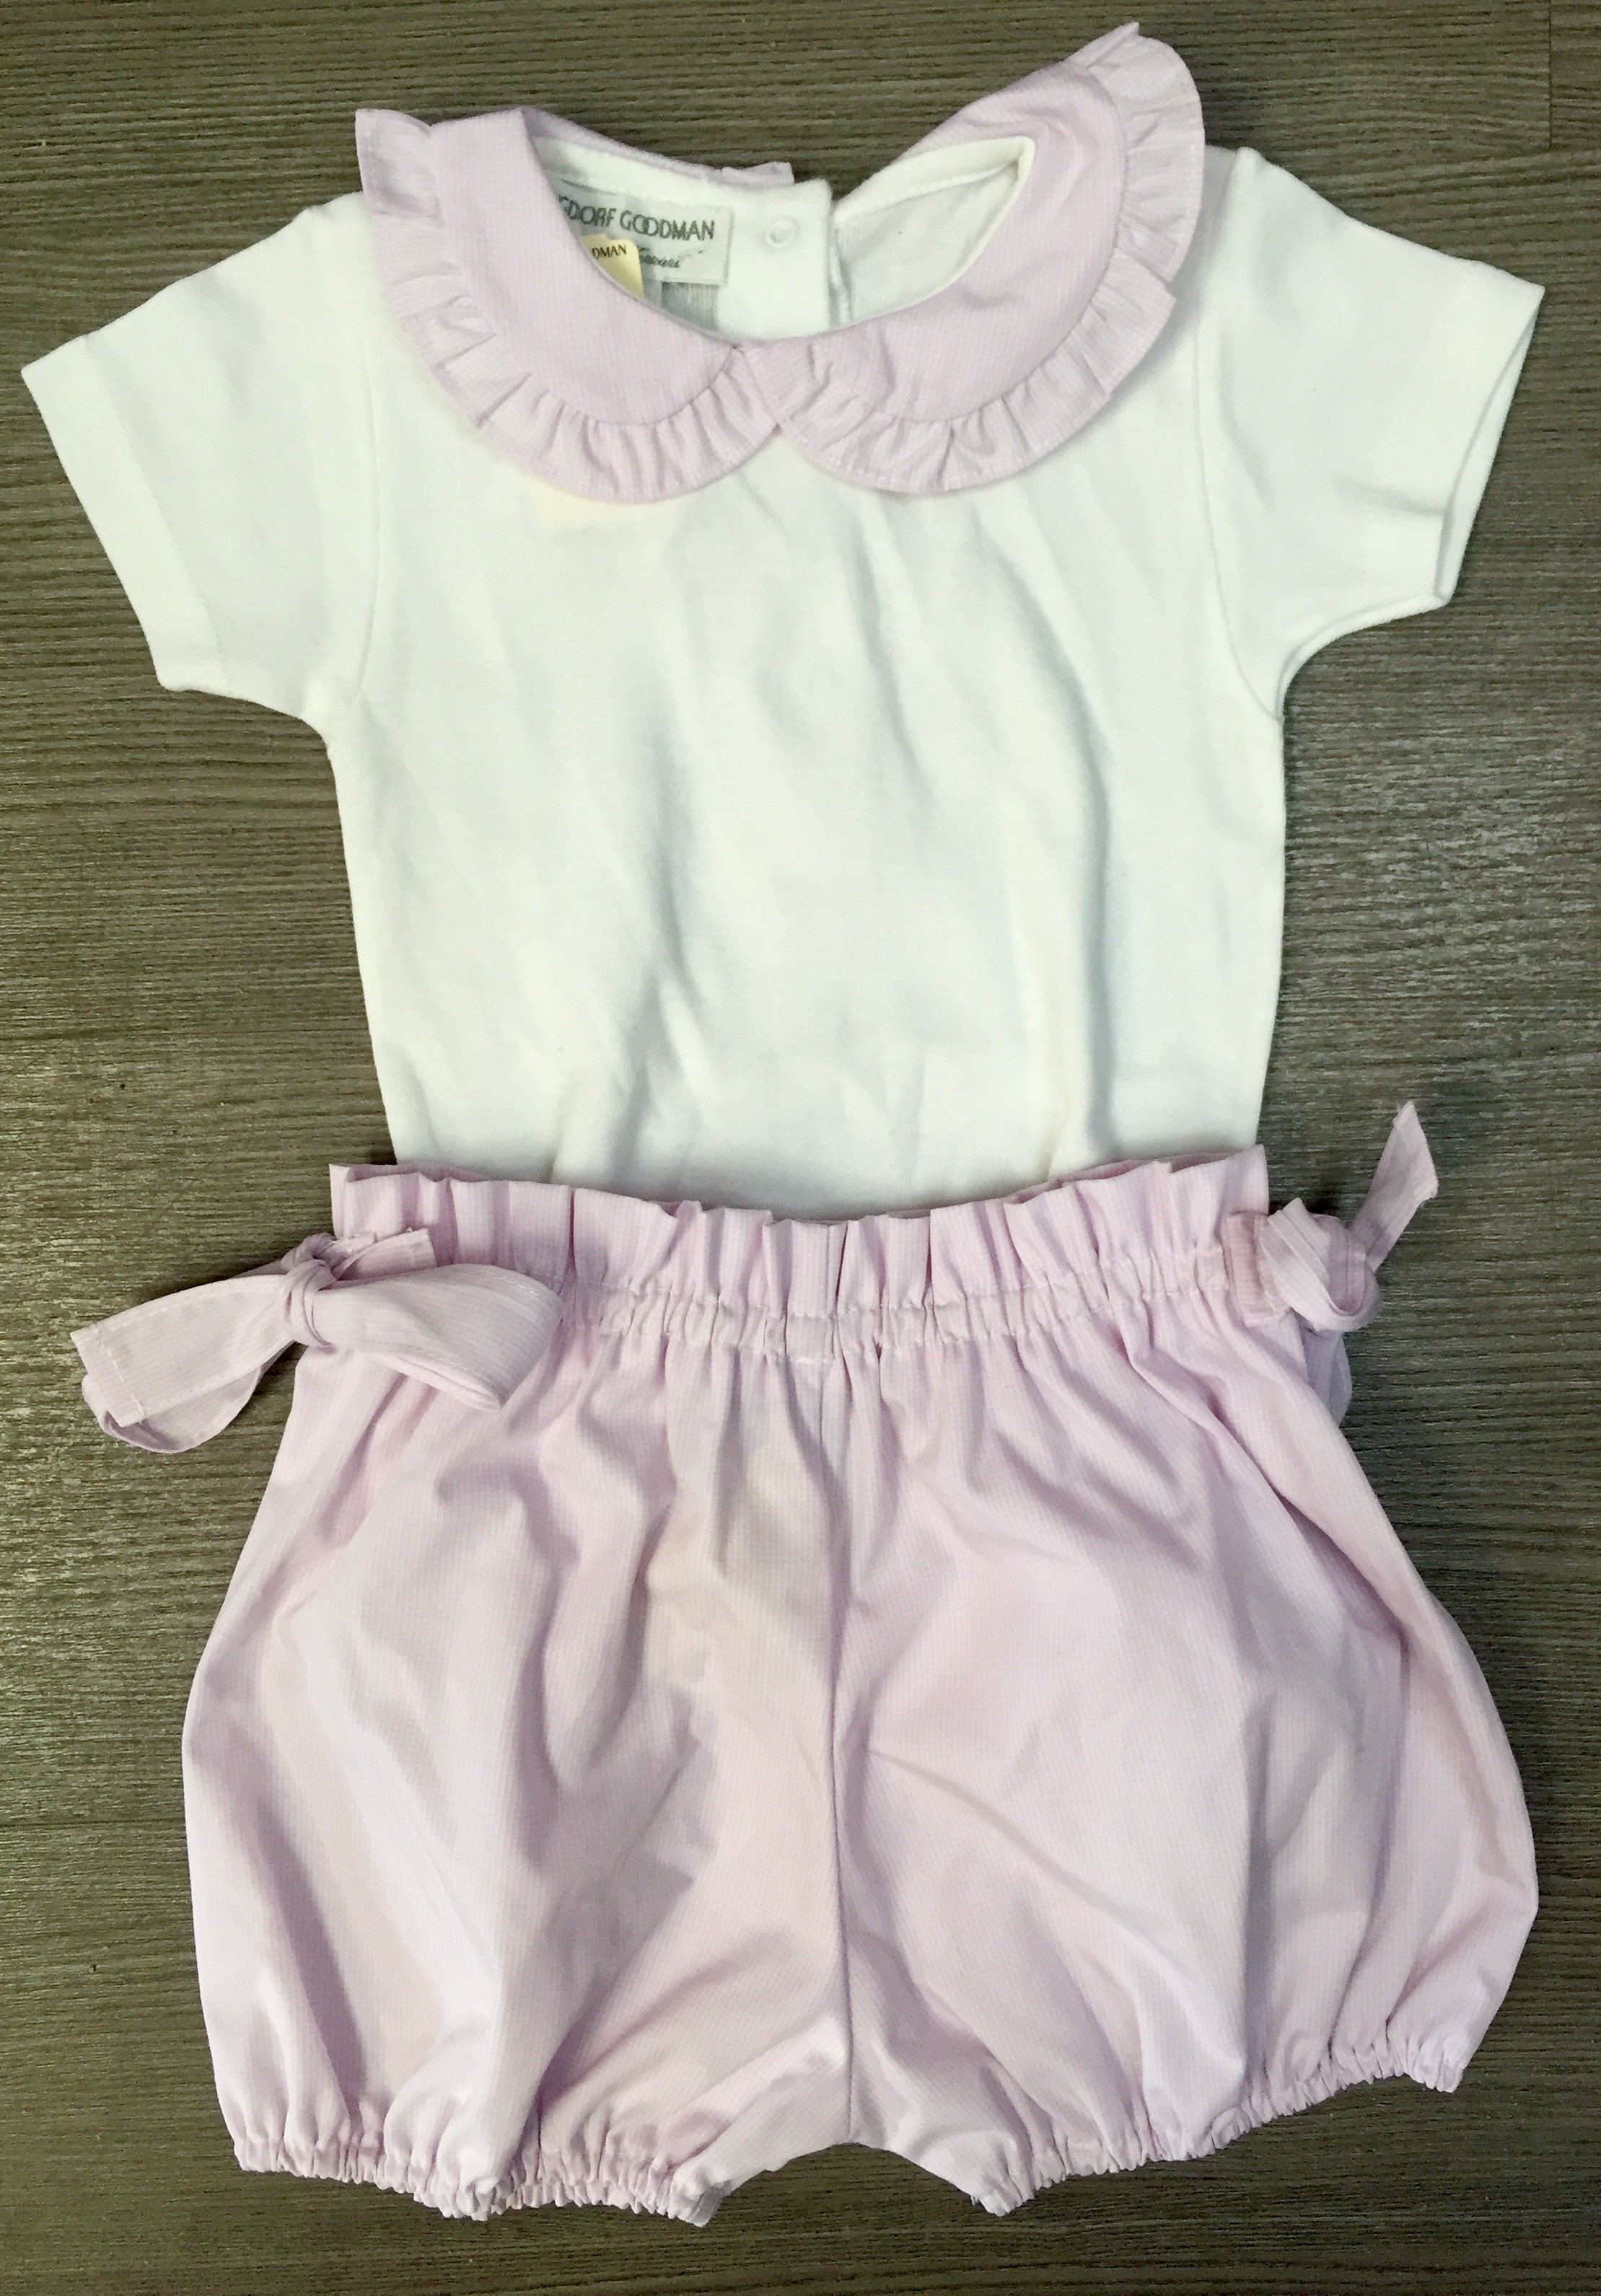 Bergdorf-Goodman-Size-18-months-Lavender-Outfit_8312A.jpg